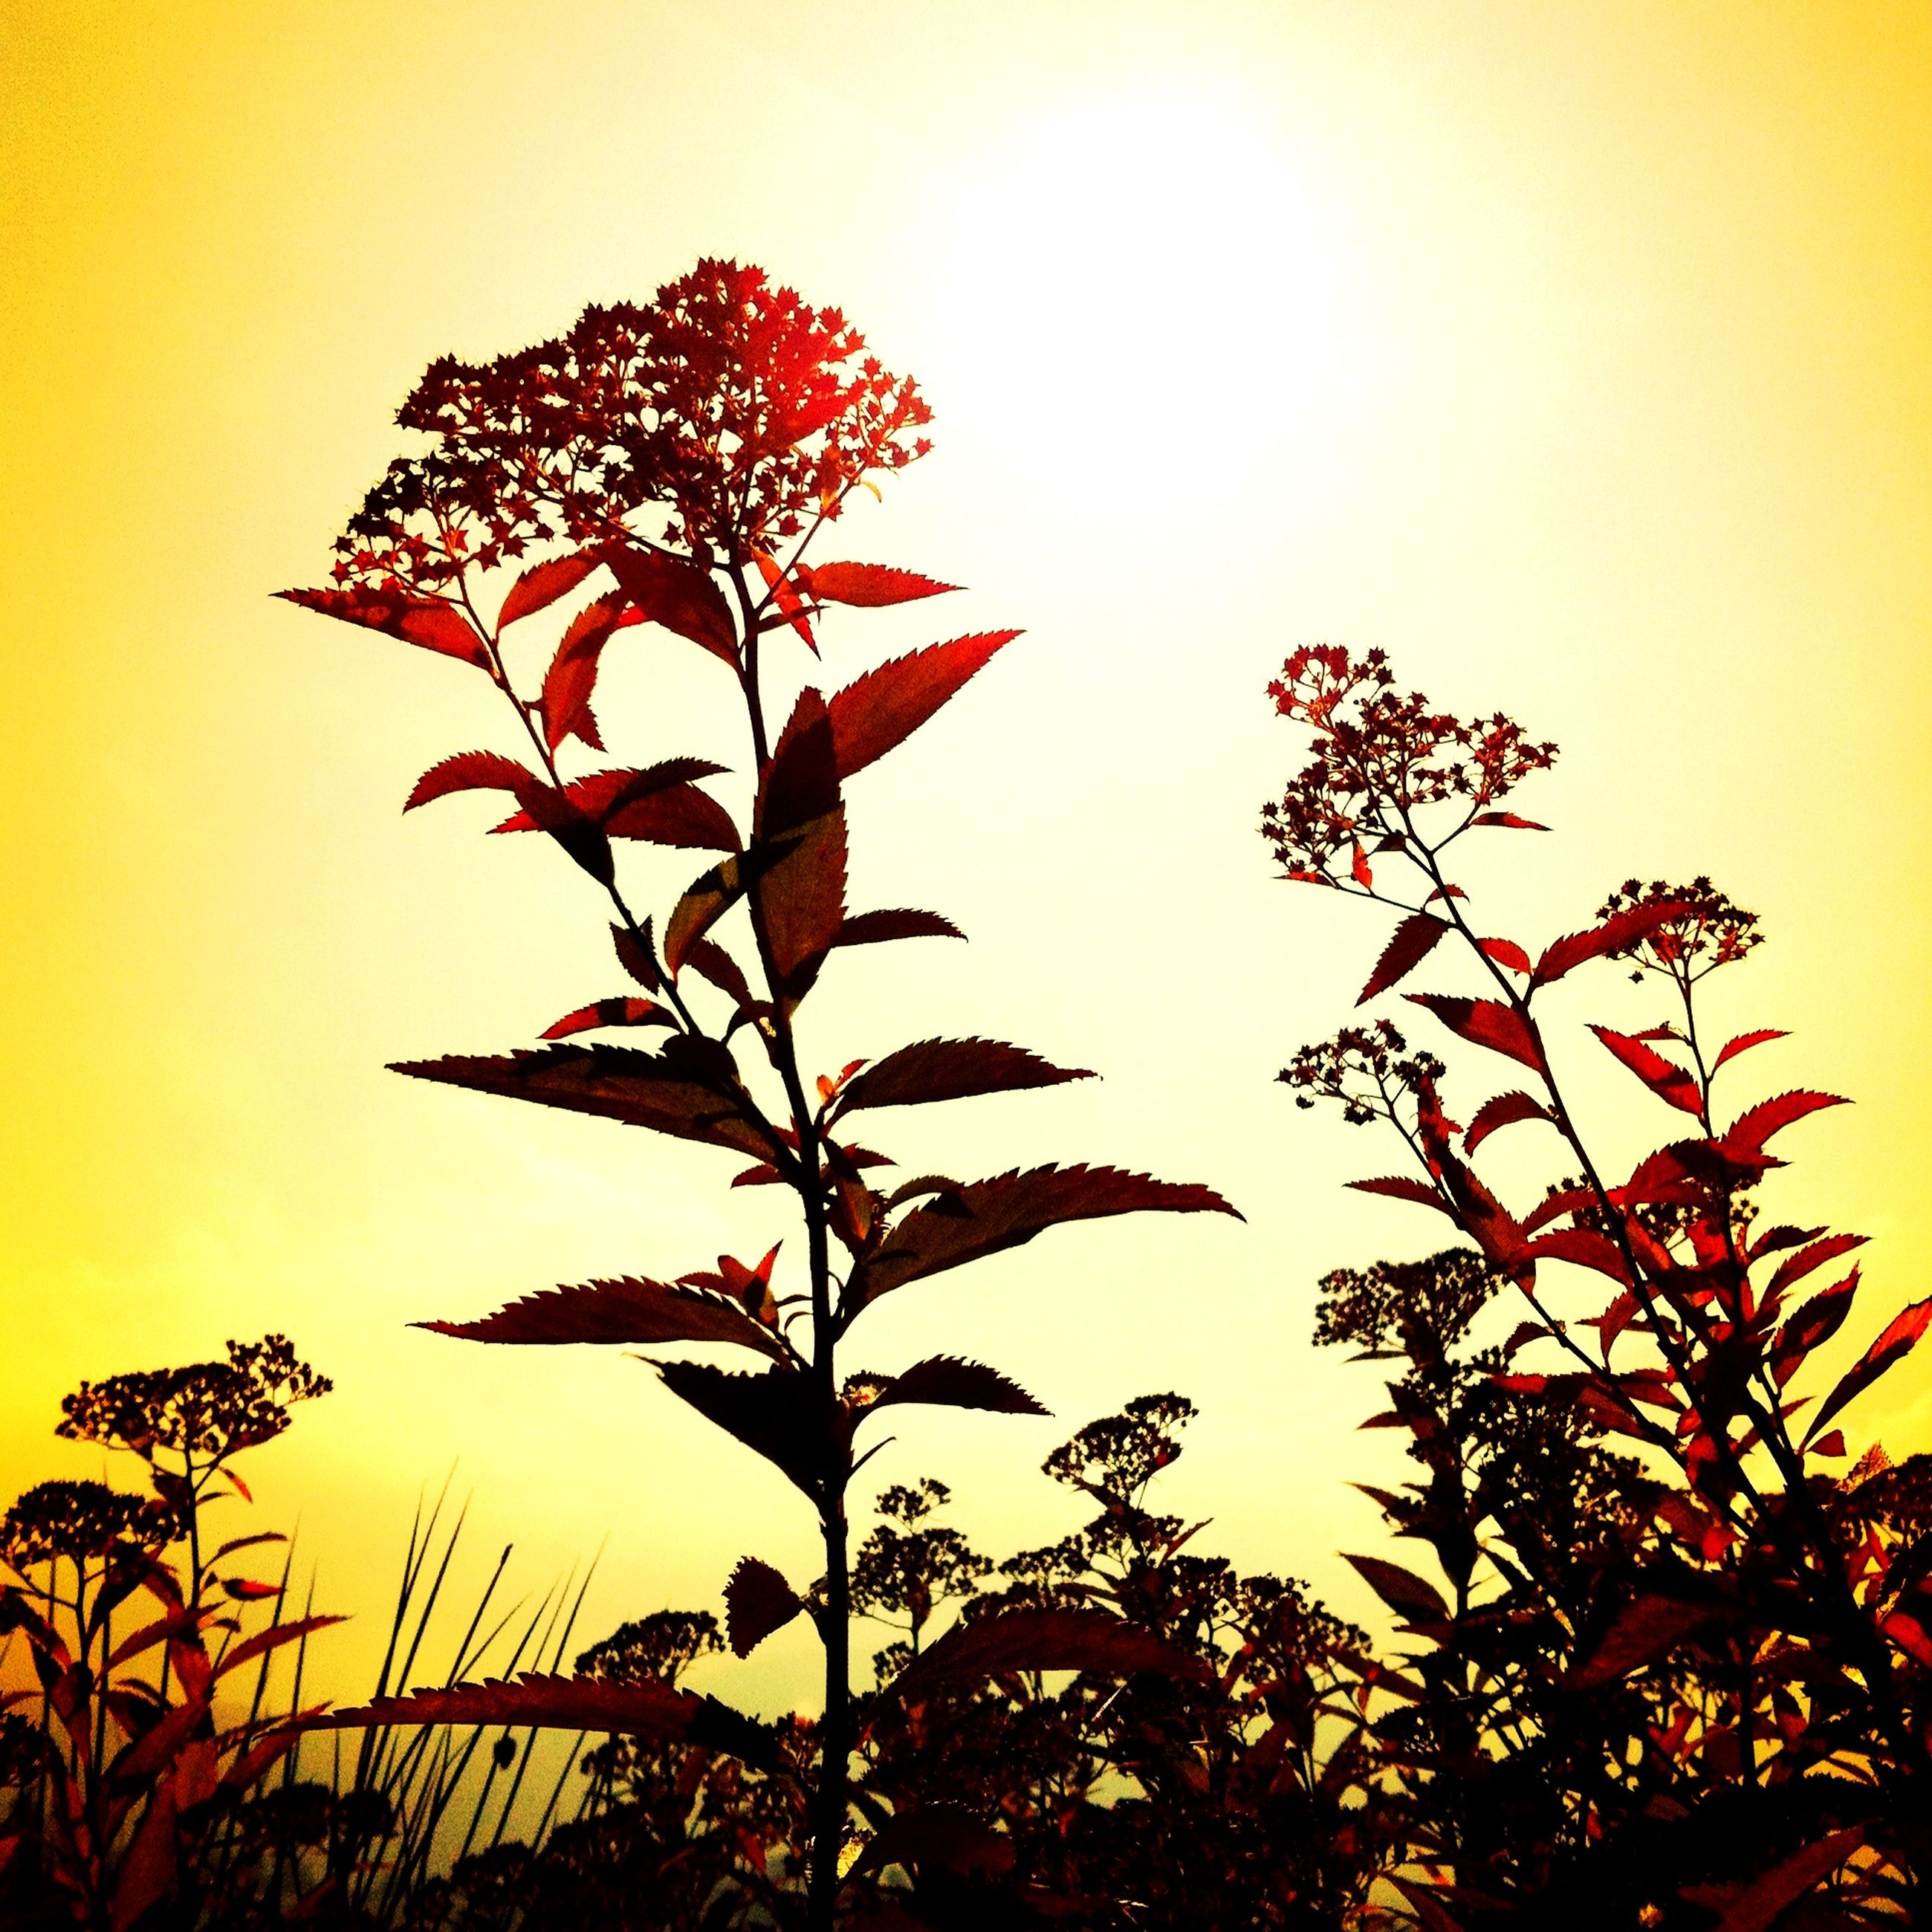 sunset, growth, leaf, orange color, nature, beauty in nature, silhouette, branch, clear sky, low angle view, sun, tree, plant, sky, tranquility, sunlight, stem, red, close-up, scenics